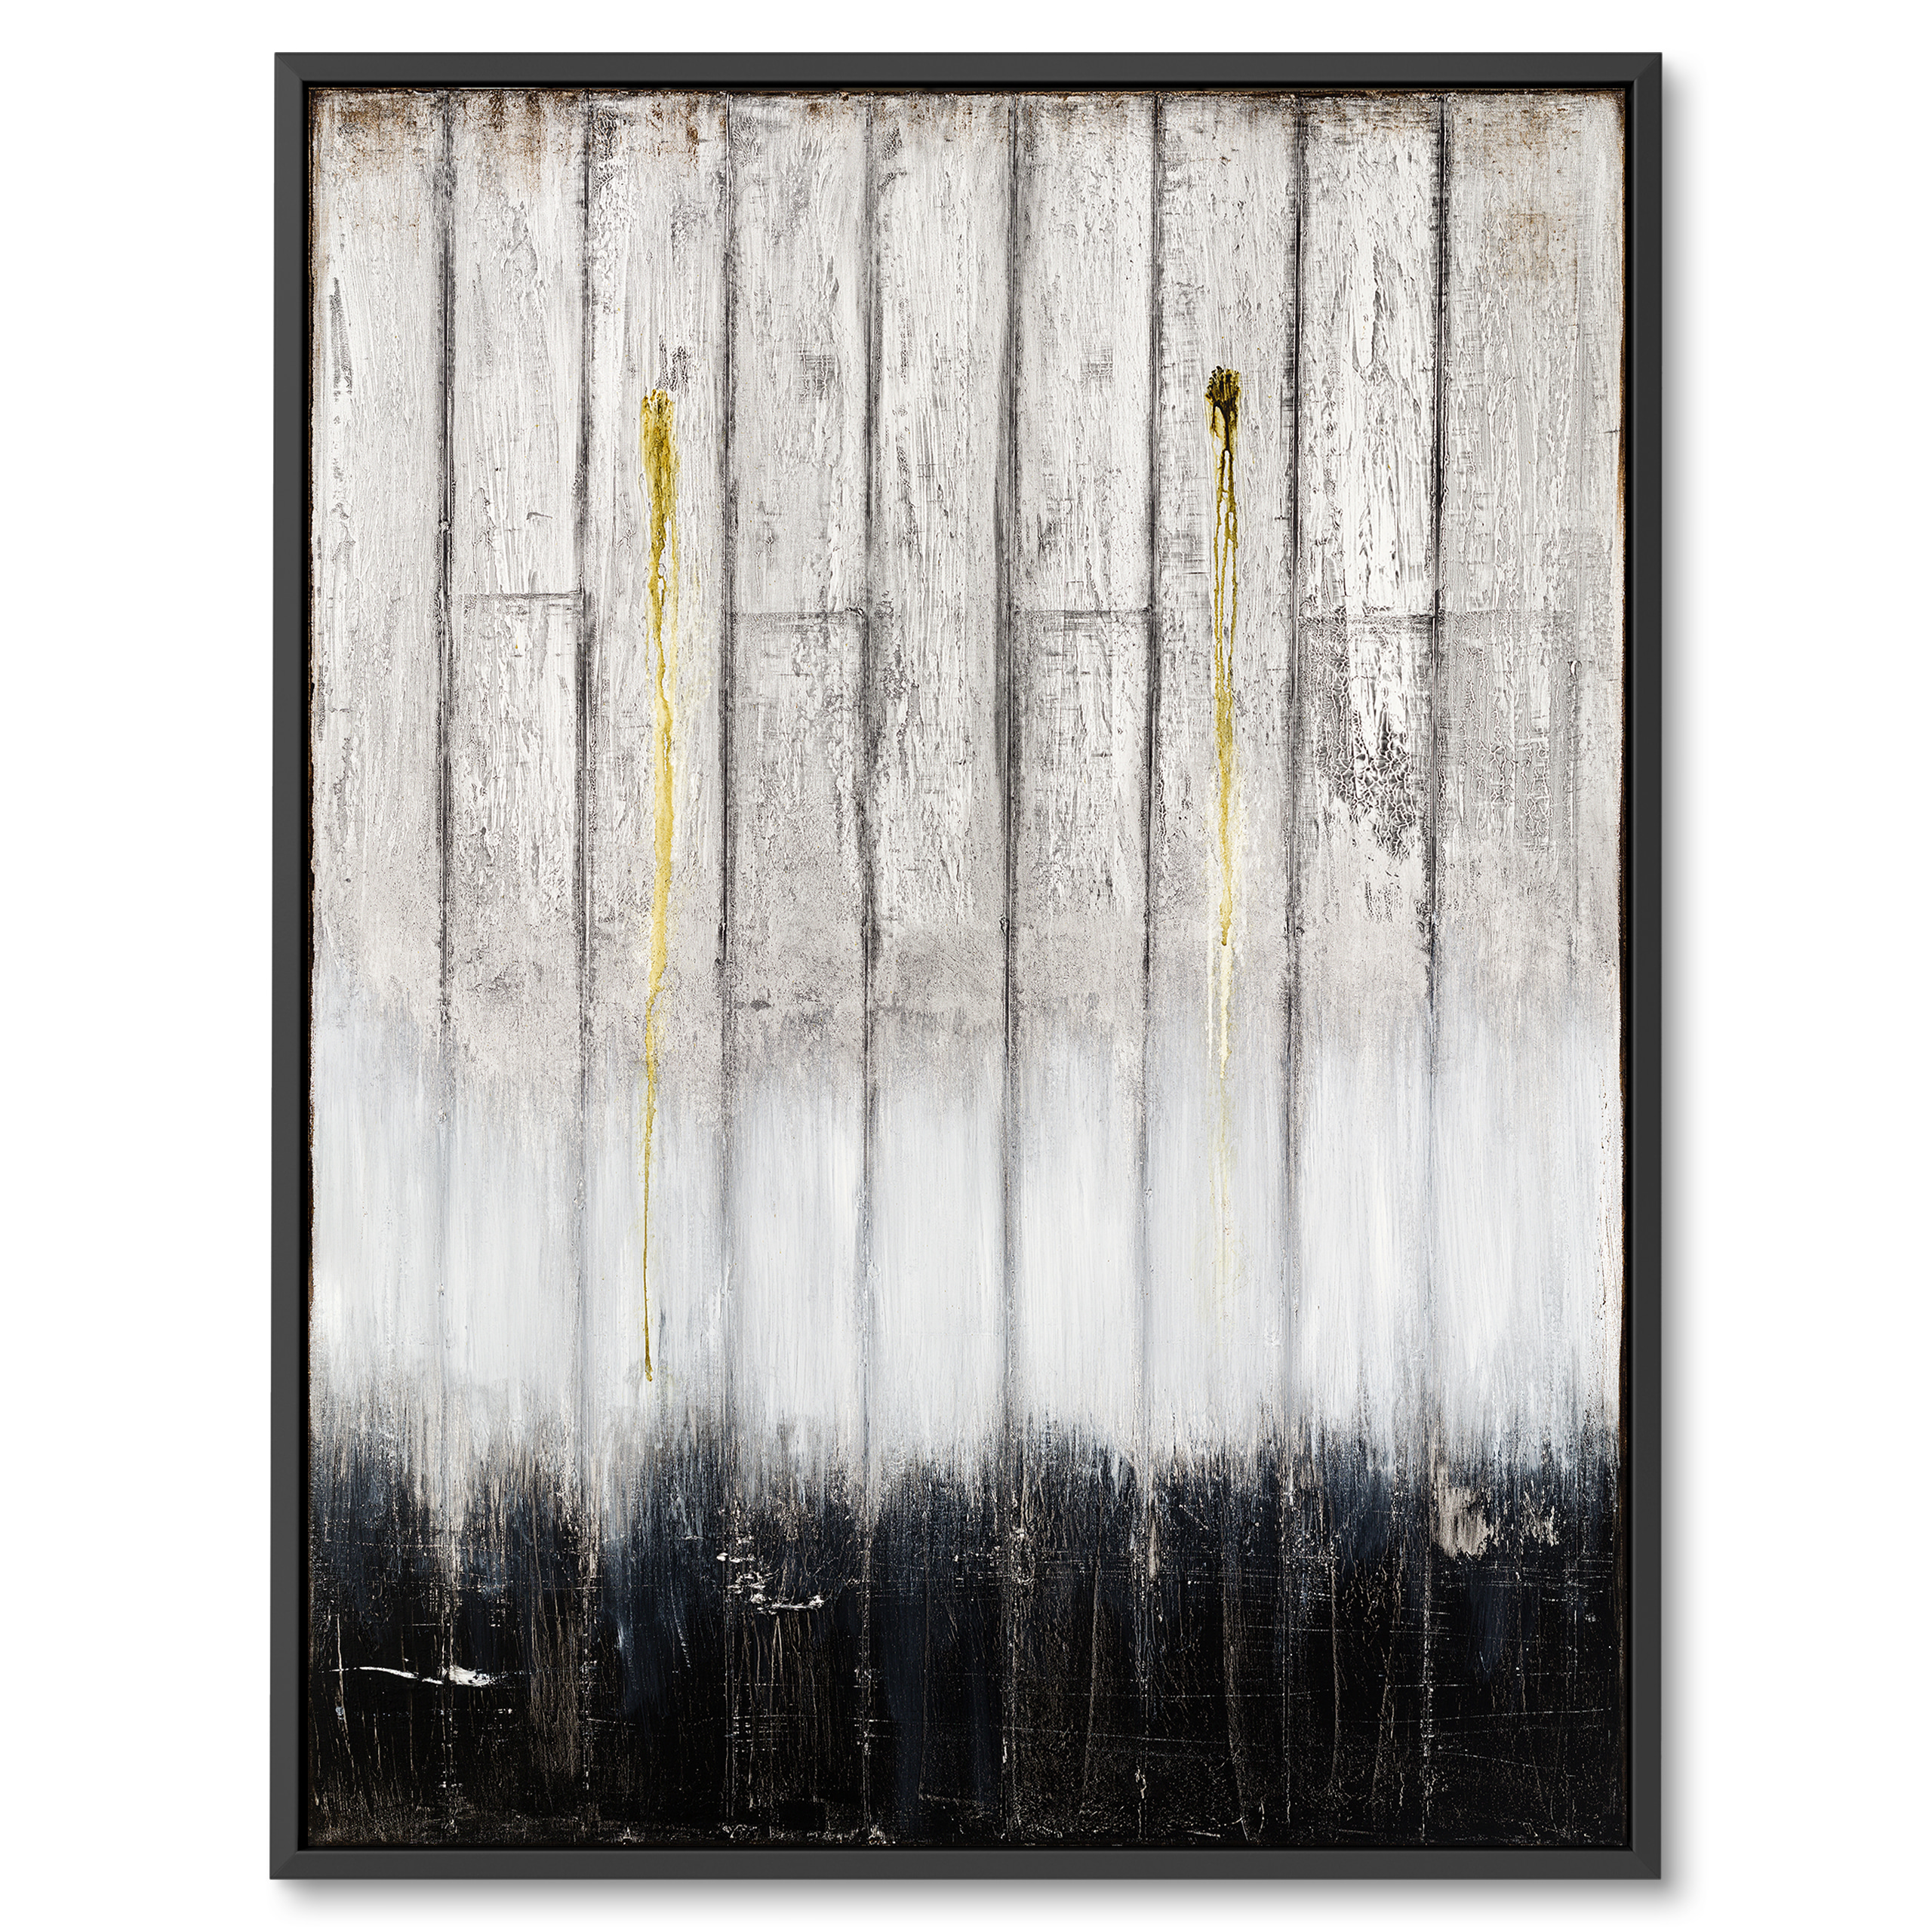 Modern abstract art by Benny Moshe, Black and white, Wooden art